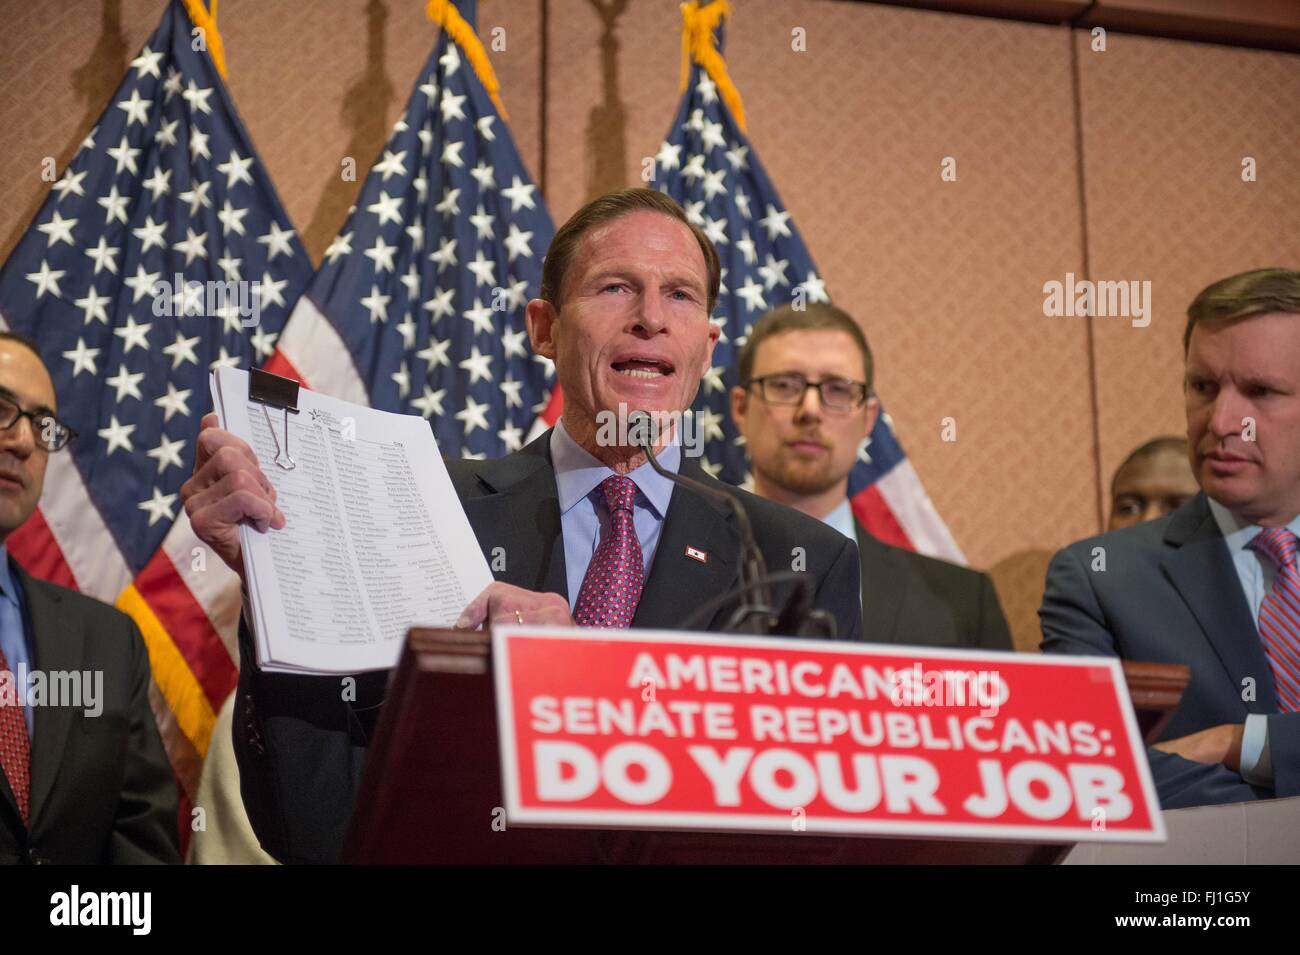 U.S. Senator Richard Blumenthal and other Democrats call on Republicans to fill the Supreme Court vacancy created - Stock Image